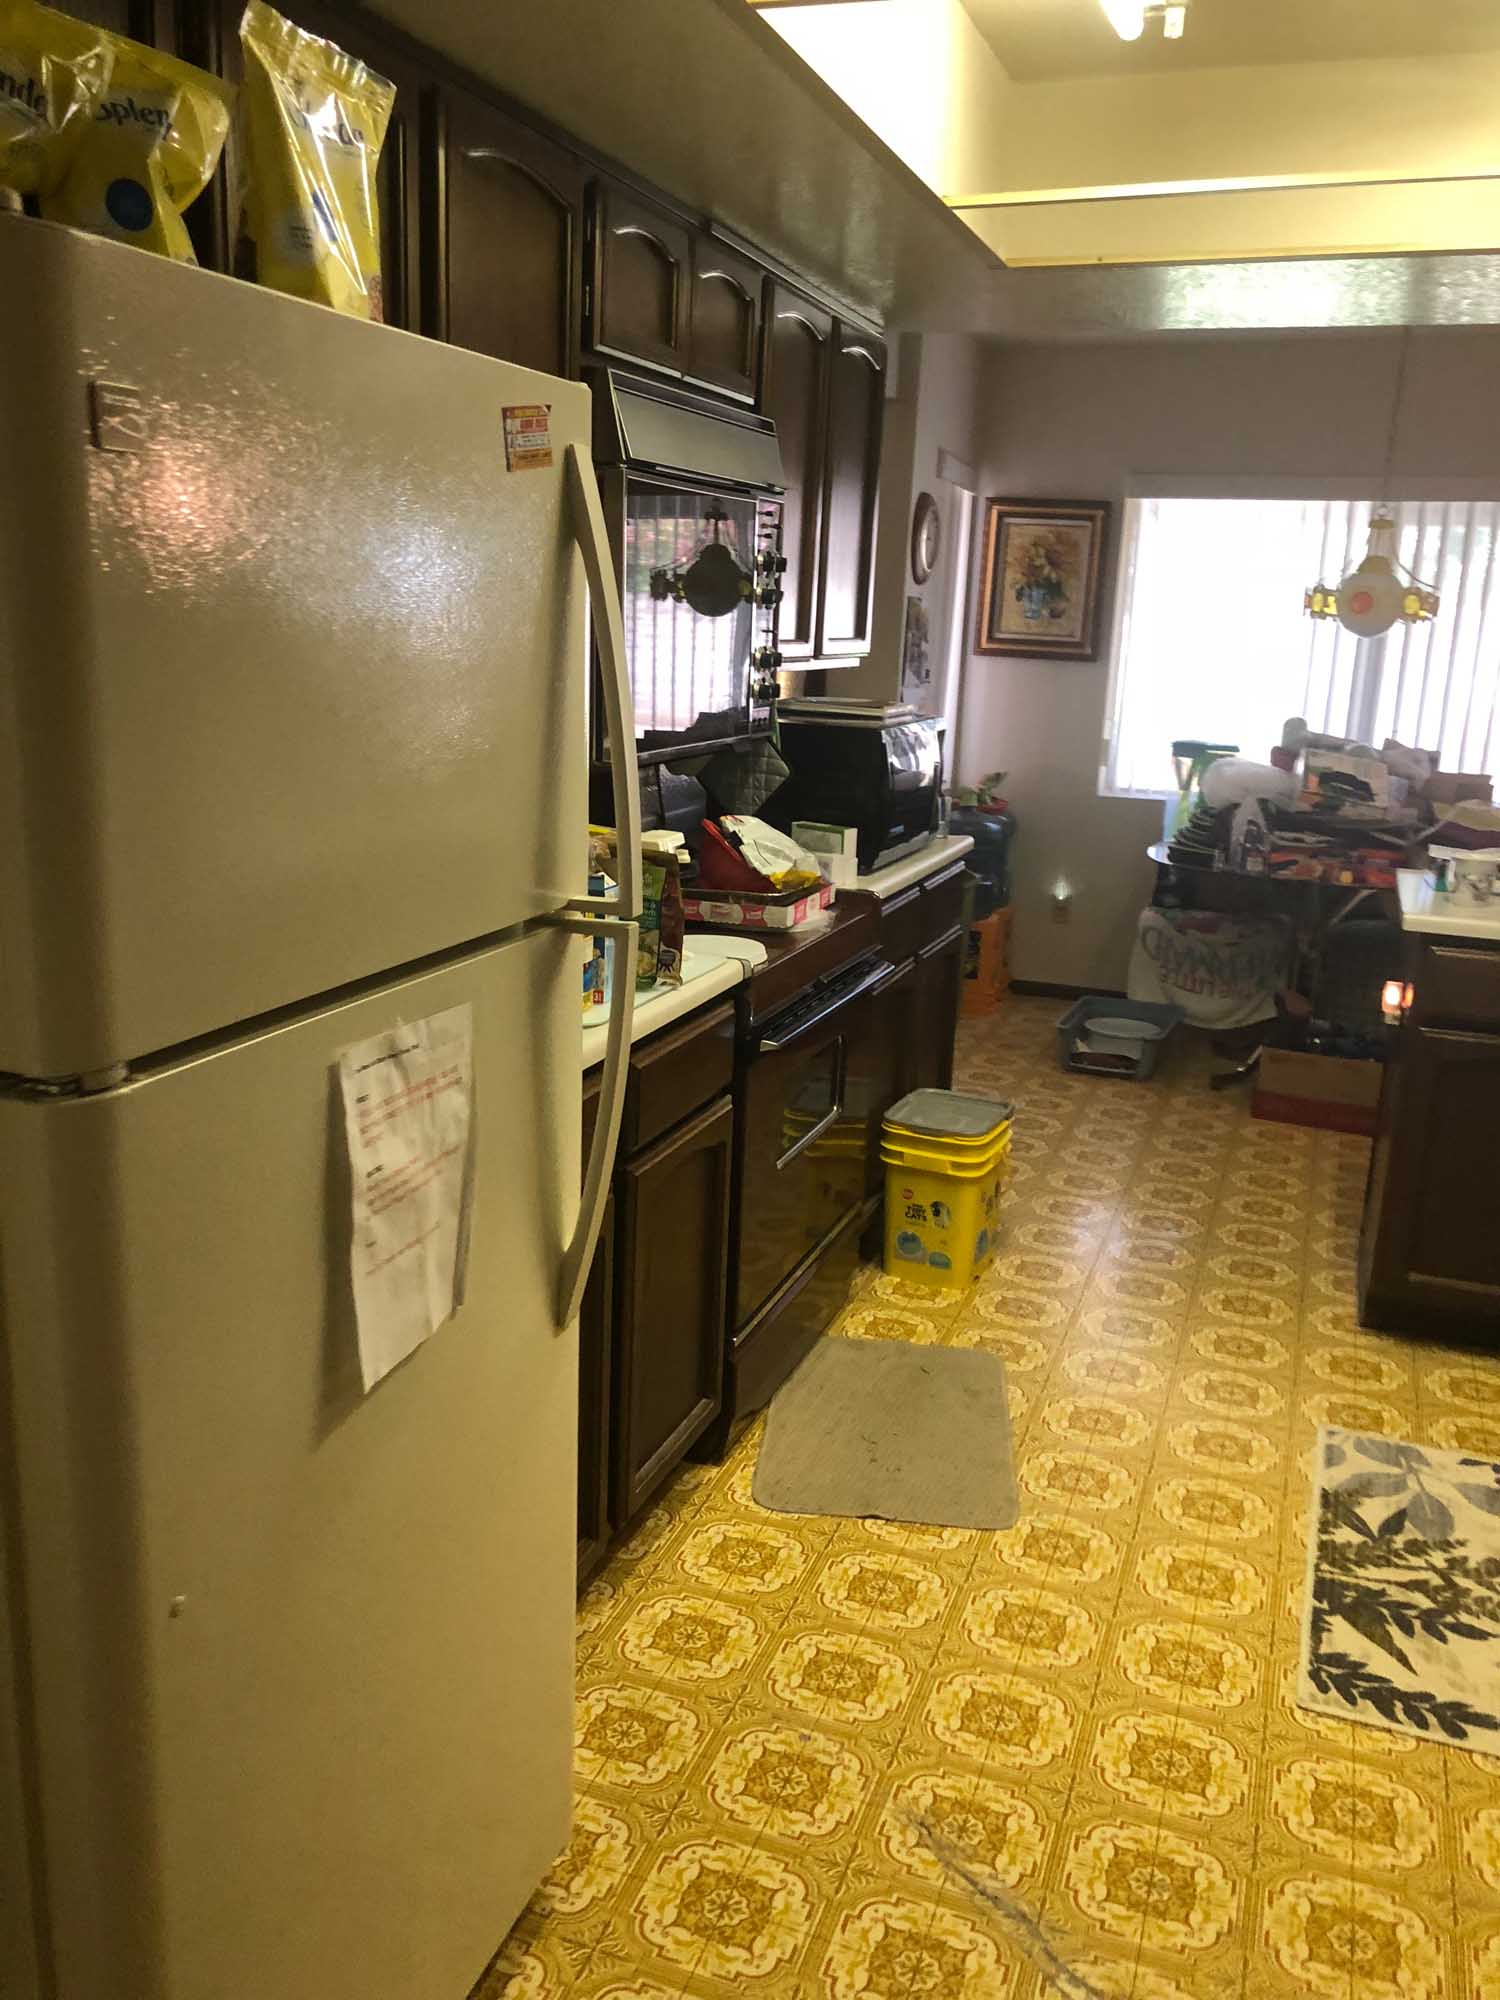 Kitchen area with old  refrigerator